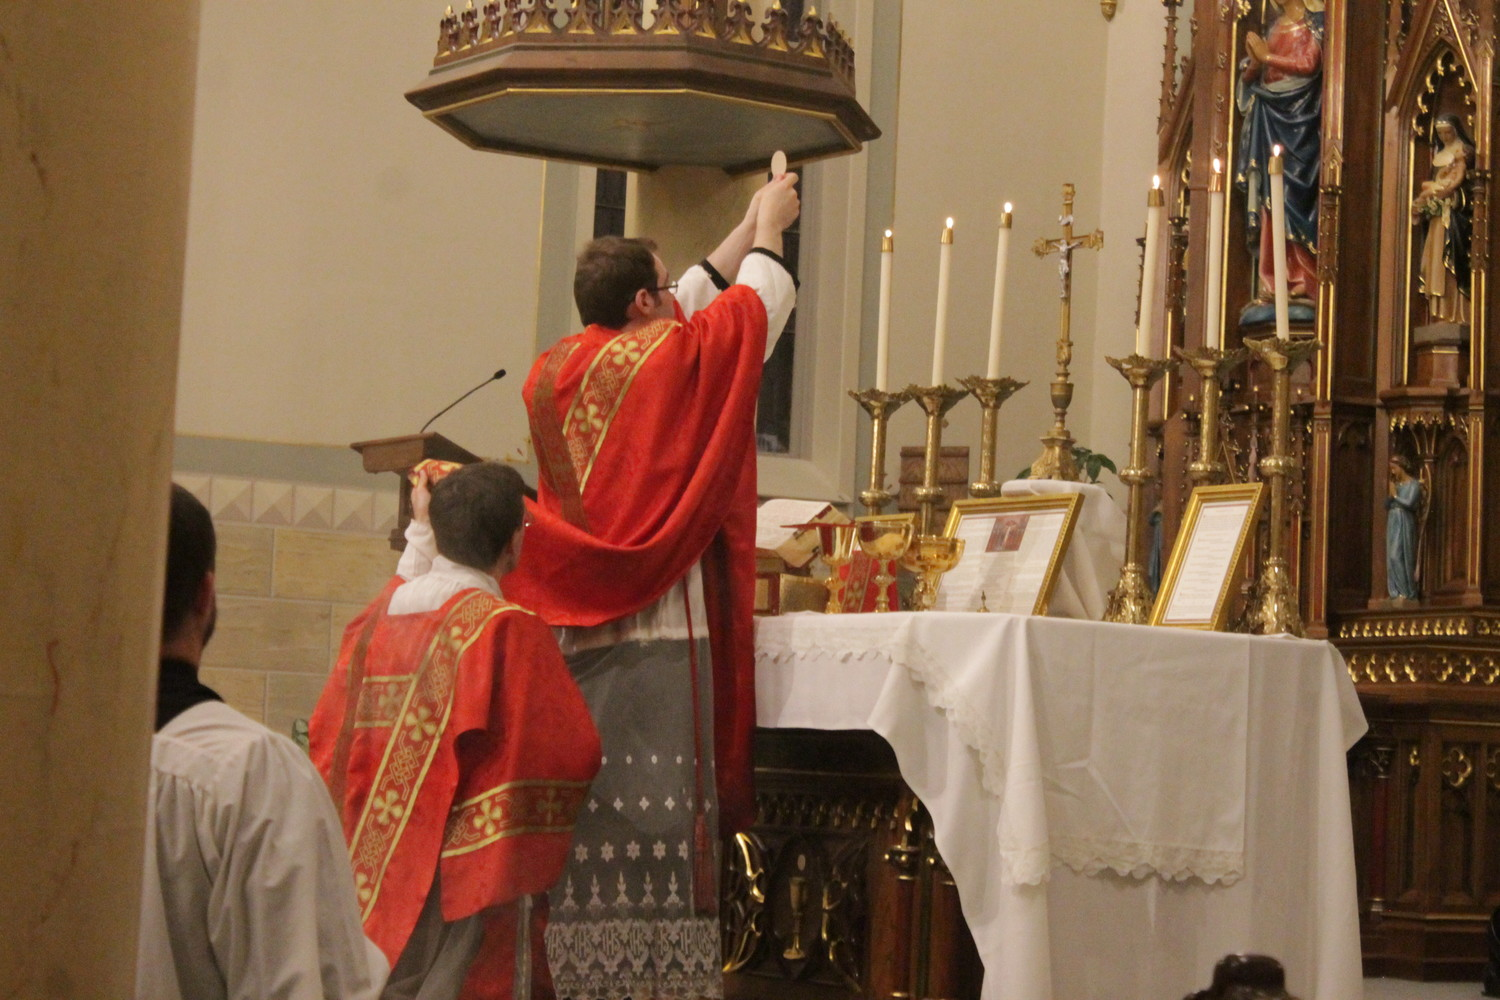 Father Dylan Schrader elevates the Most Blessed Sacrament while offering Mass in the extraordinary form in Latin on Sept. 14, the Feast of the Exultation of the Cross, in St. Peter Church in Jefferson City.